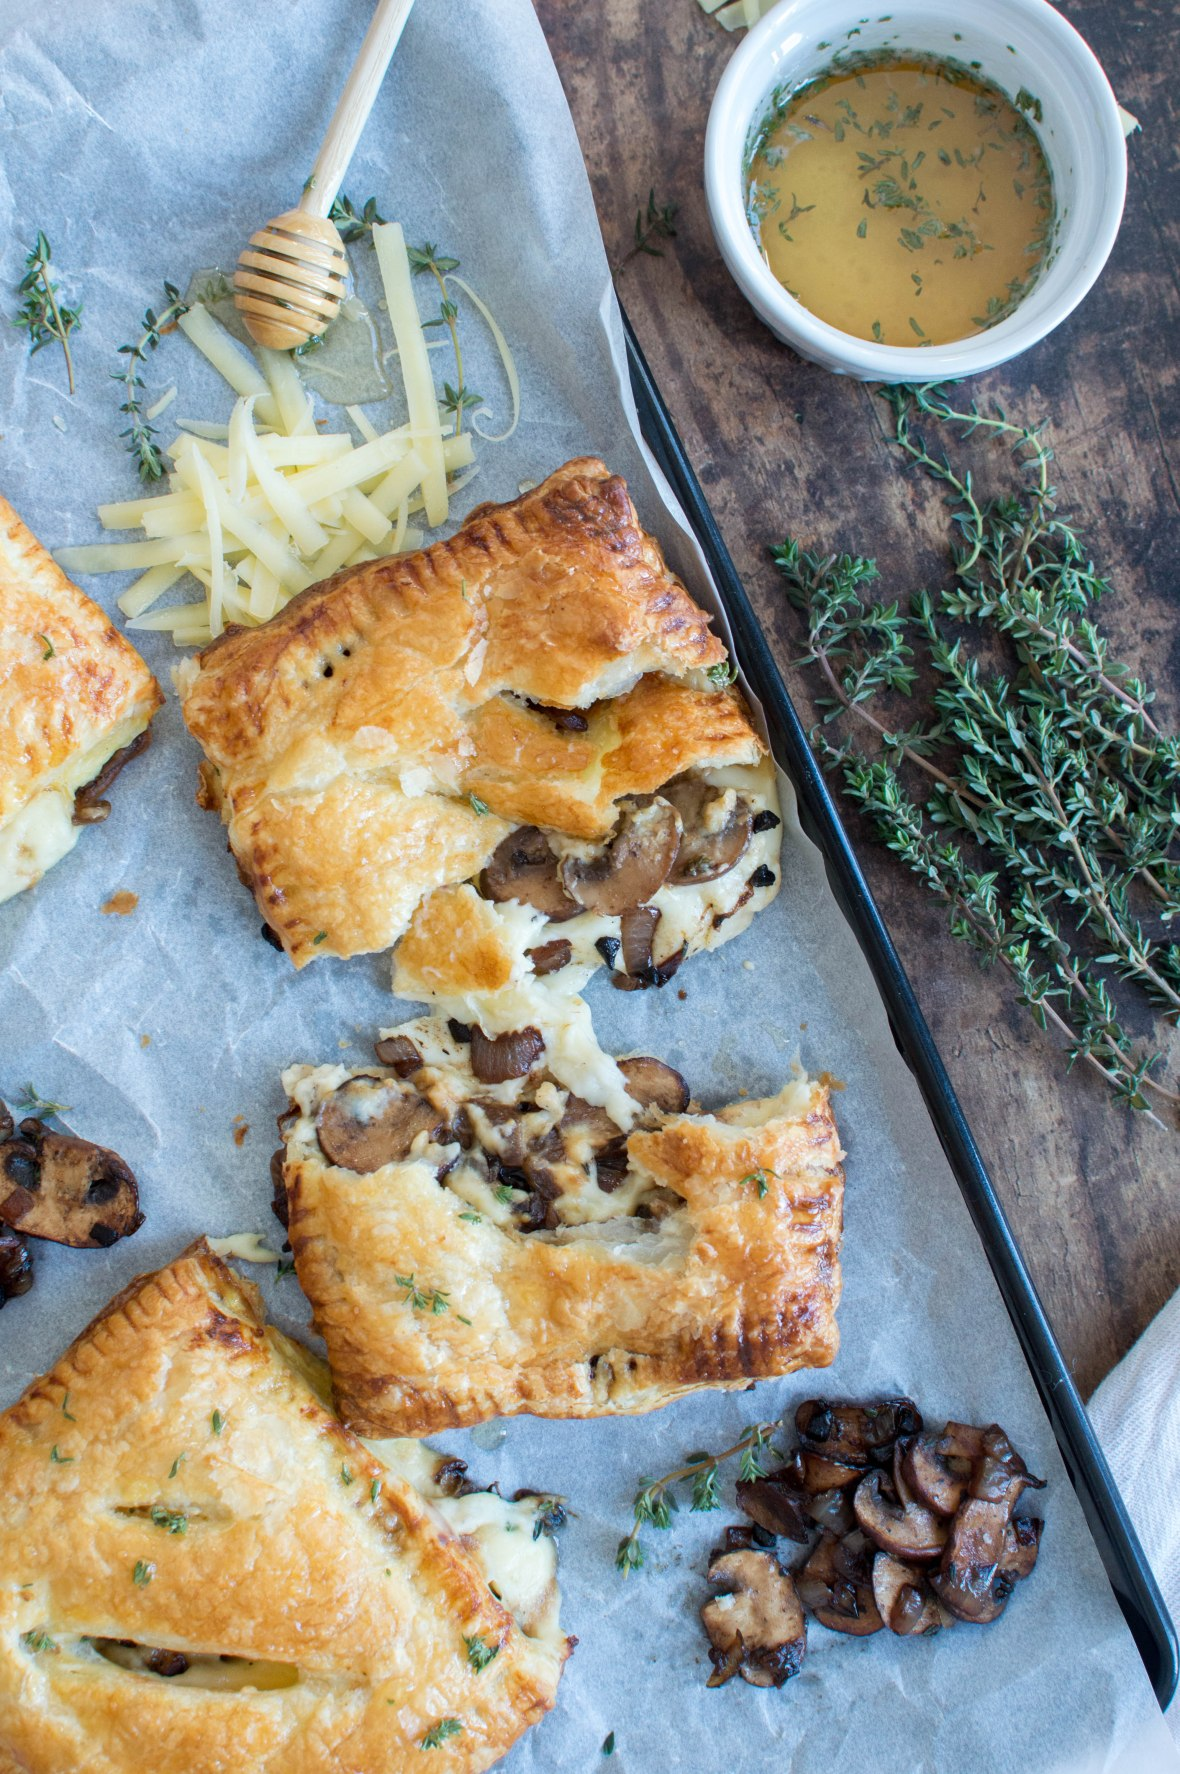 Black Garlic, Mushroom & Cheddar Pasties With Salted Thyme Honey Drizzle - Kay's Kitchen